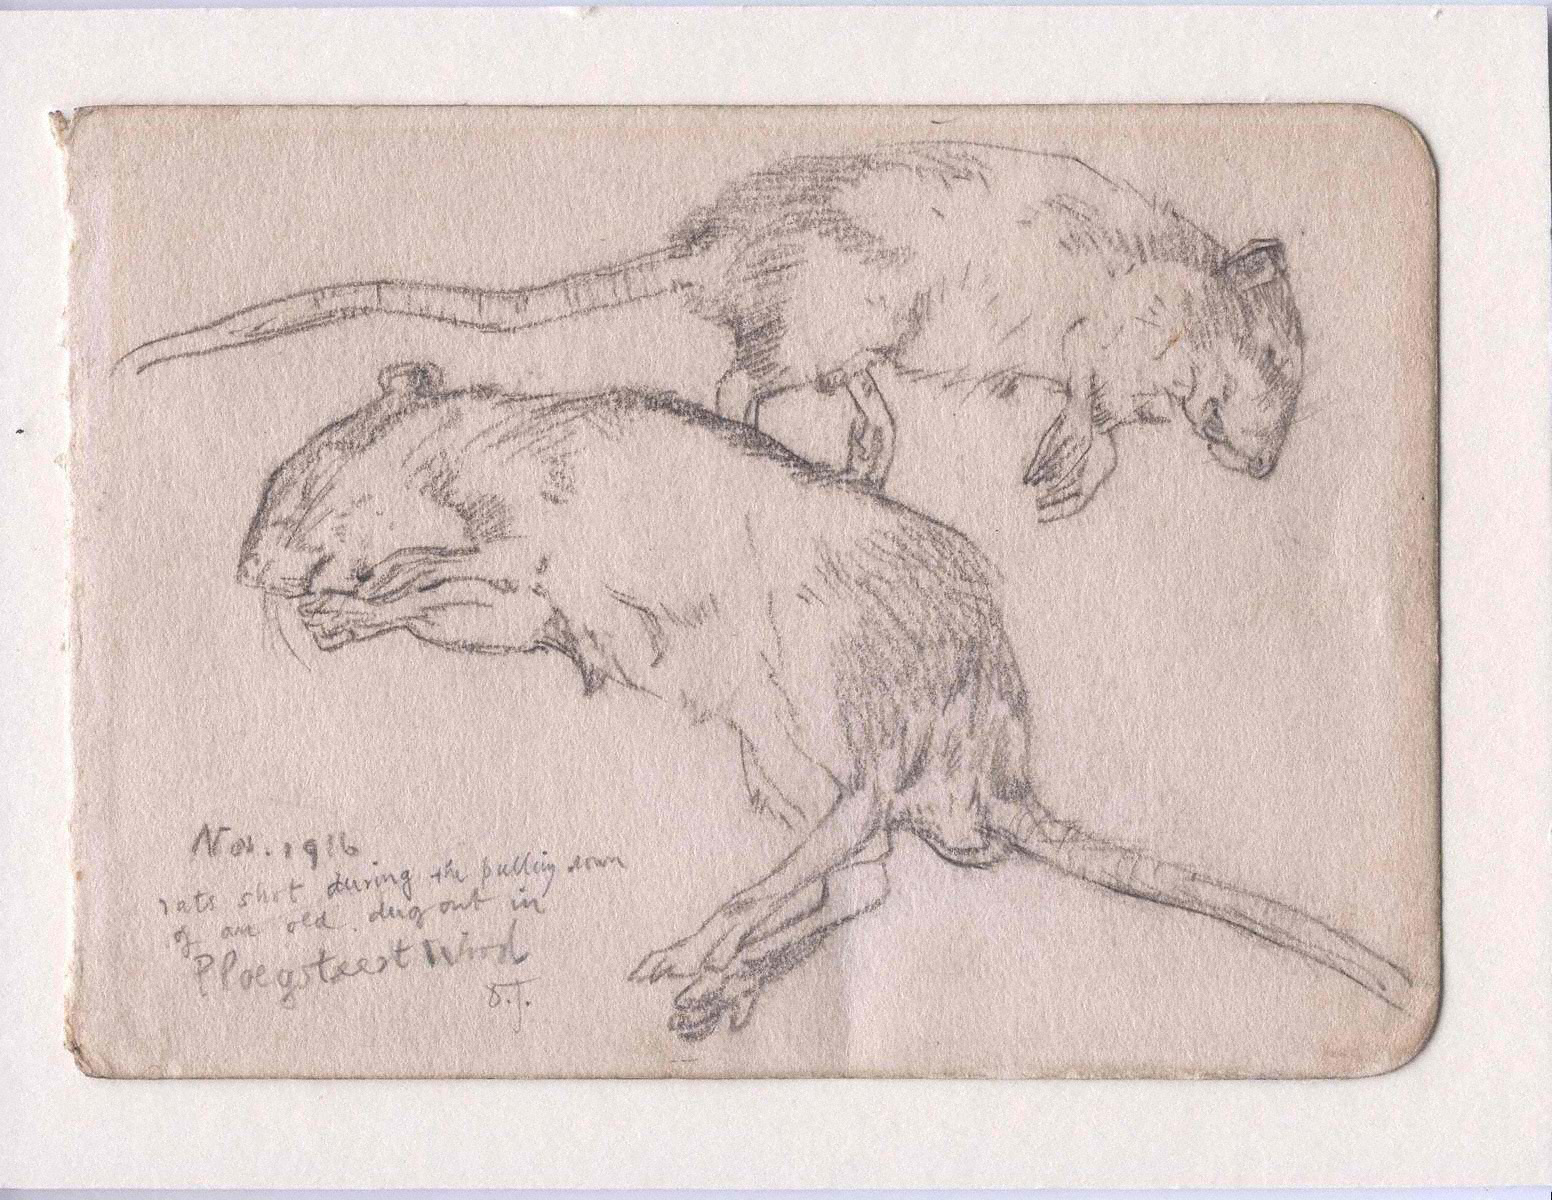 Drawn rat ww1 Contents Data package package 6159